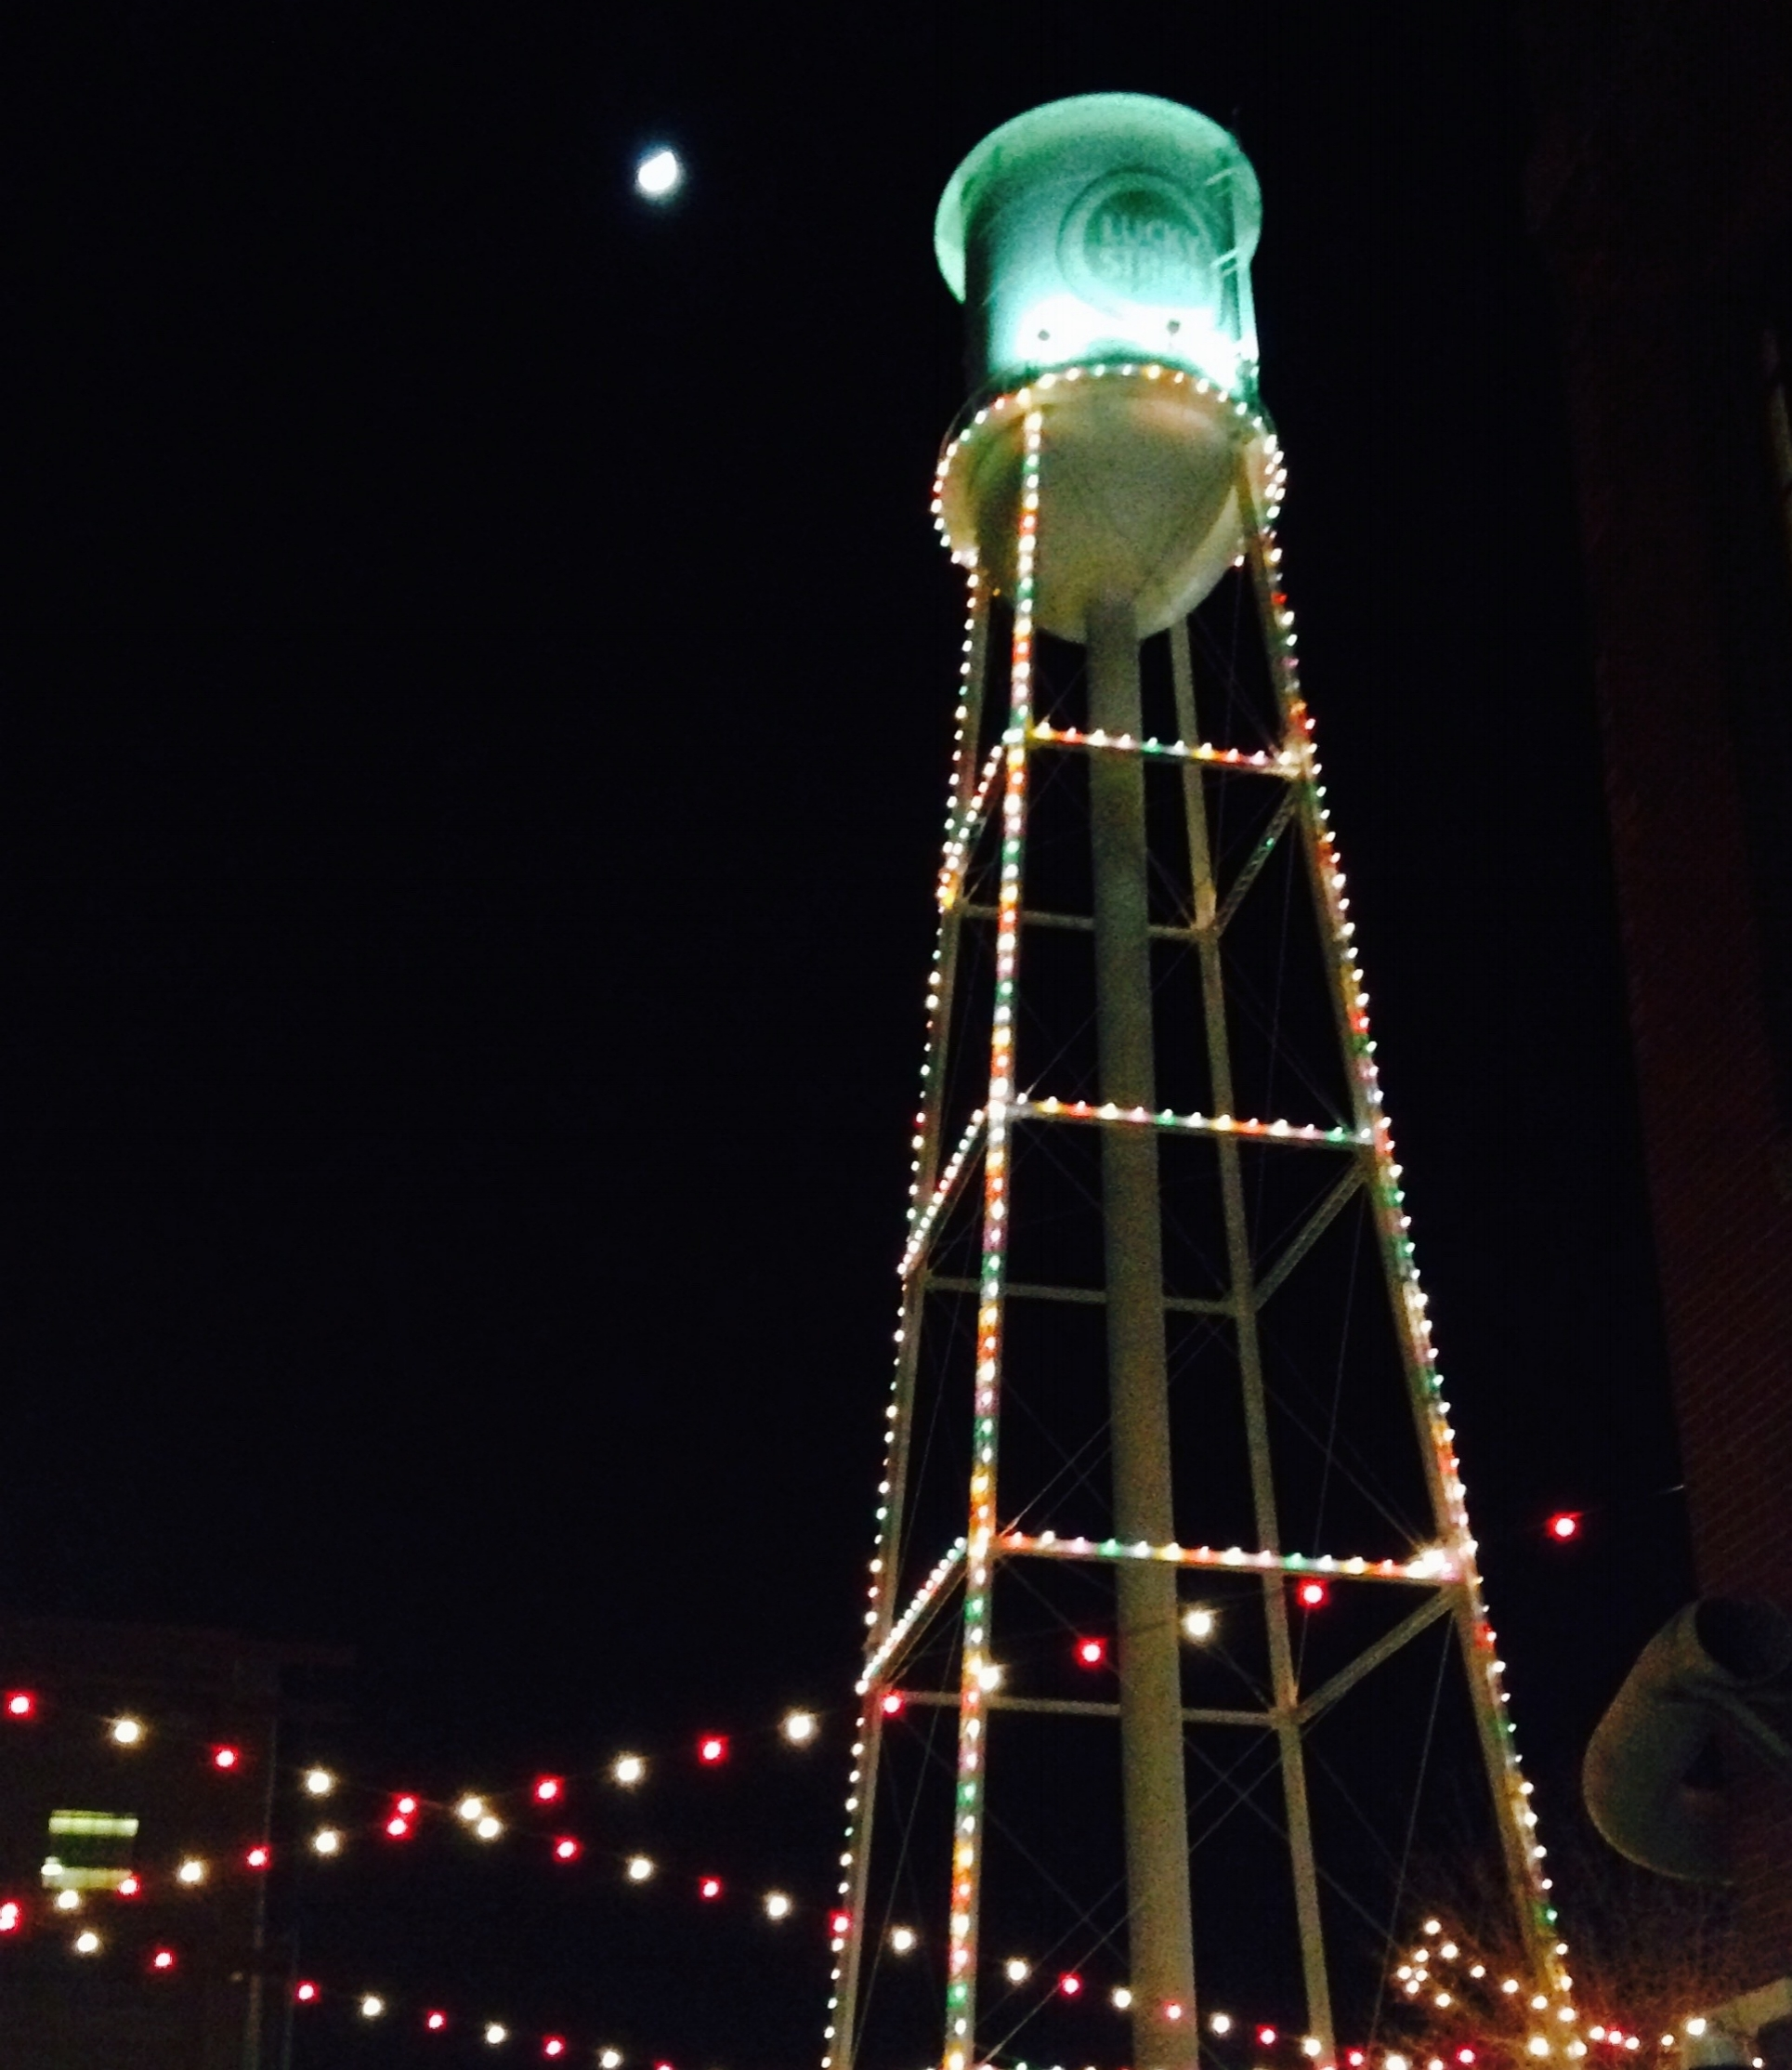 American Tobacco water tower dressed in lights.